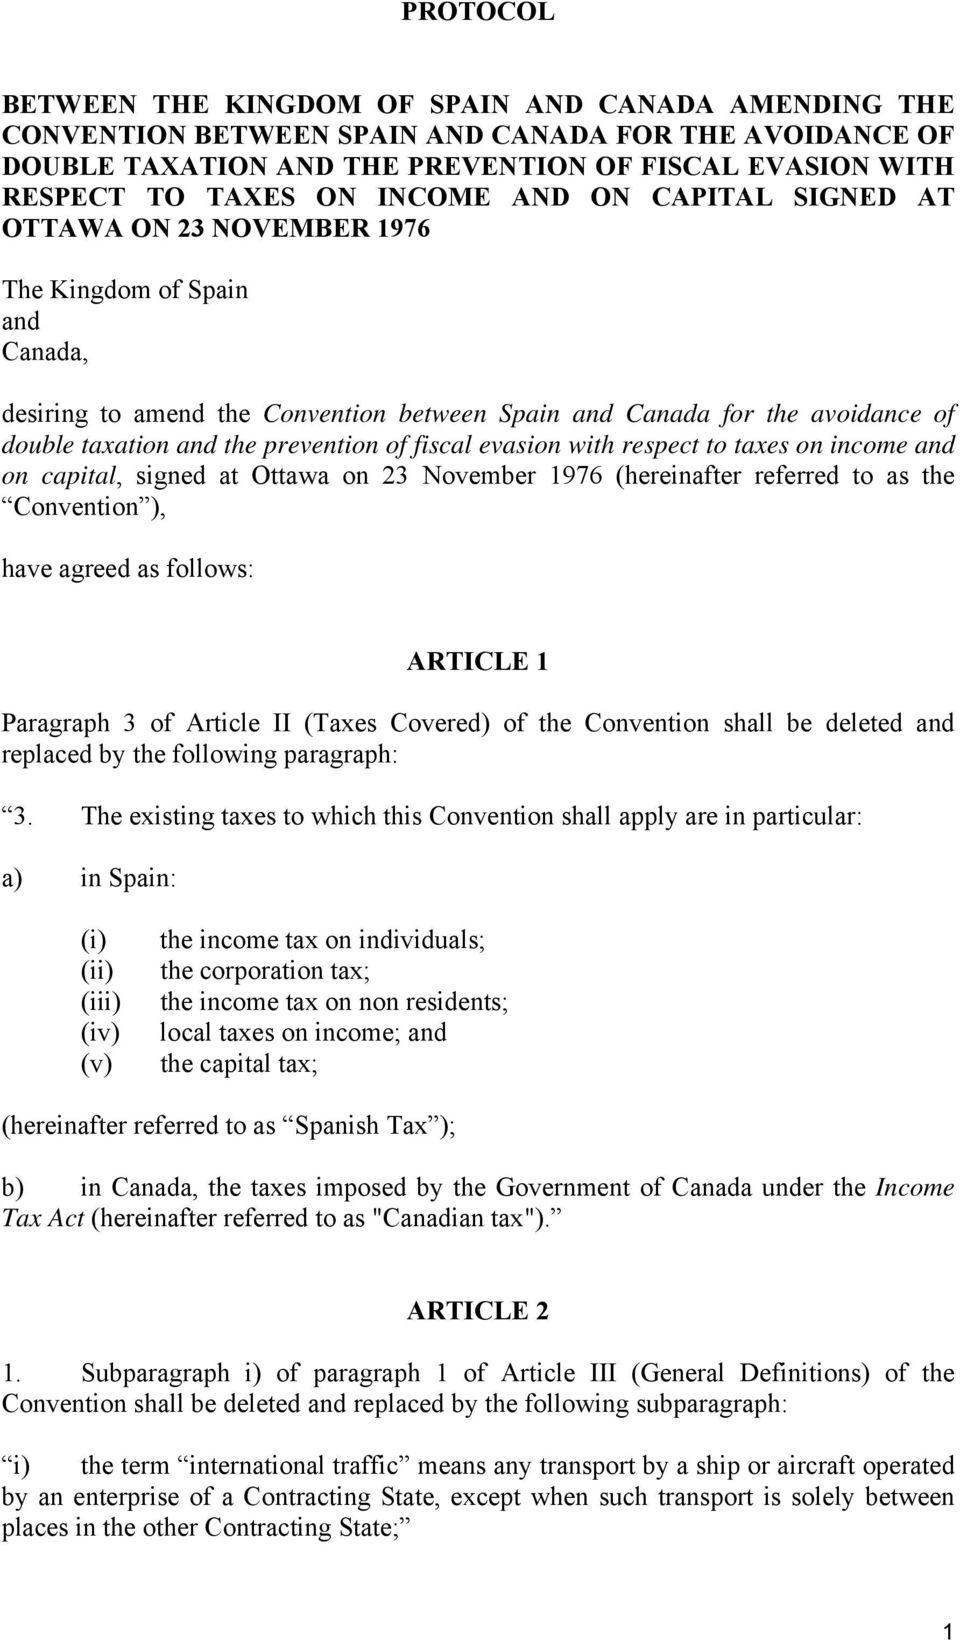 prevention of fiscal evasion with respect to taxes on income and on capital, signed at Ottawa on 23 November 1976 (hereinafter referred to as the Convention ), have agreed as follows: ARTICLE 1